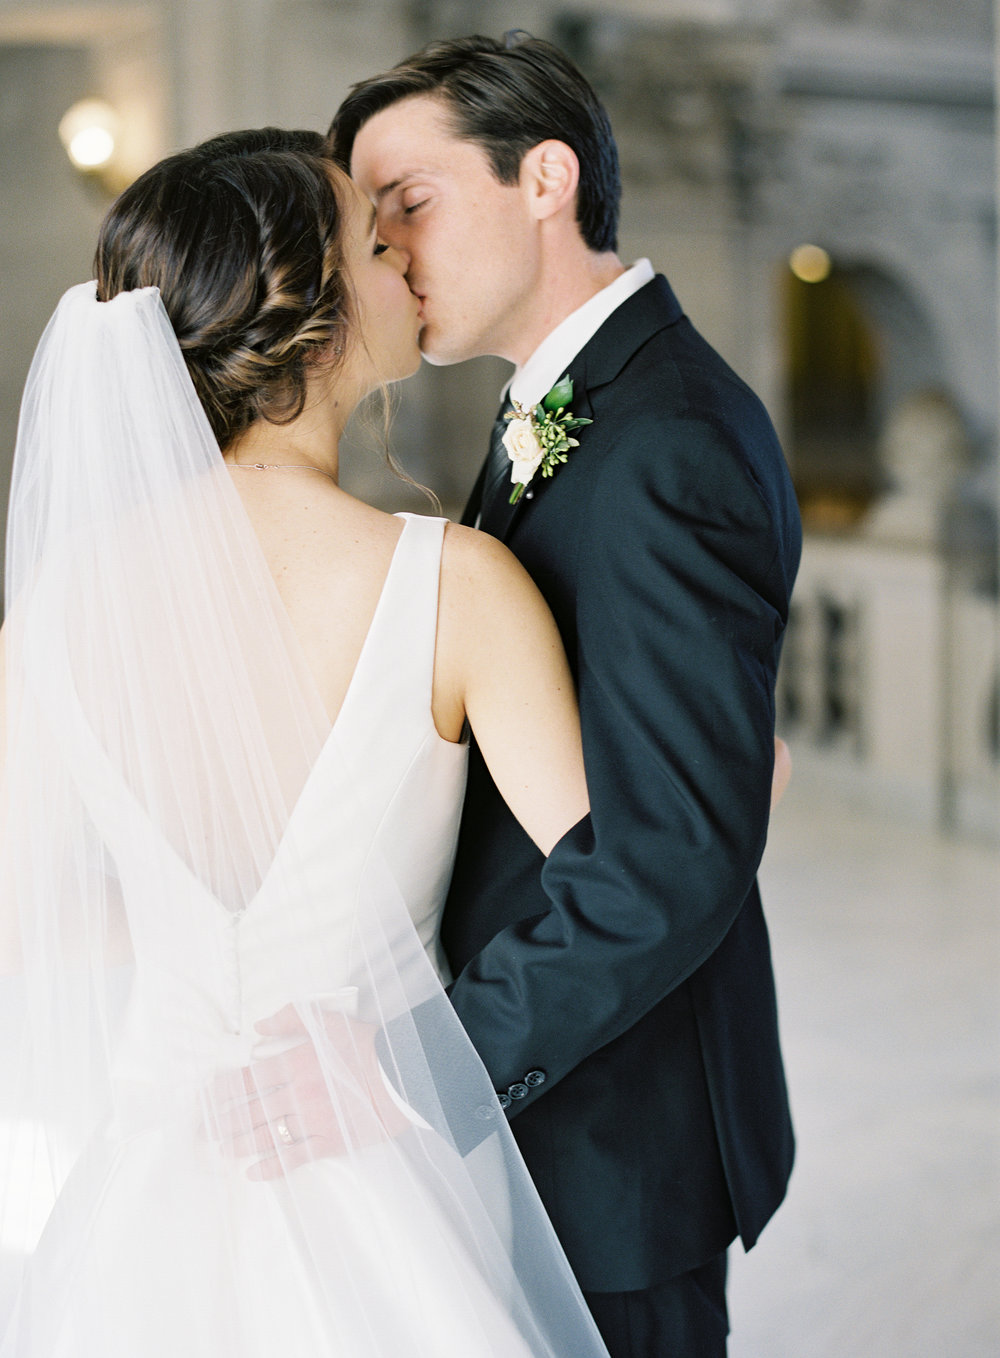 Meghan Mehan Photography - California Wedding Photographer | San Francisco City Hall Wedding 020.jpg